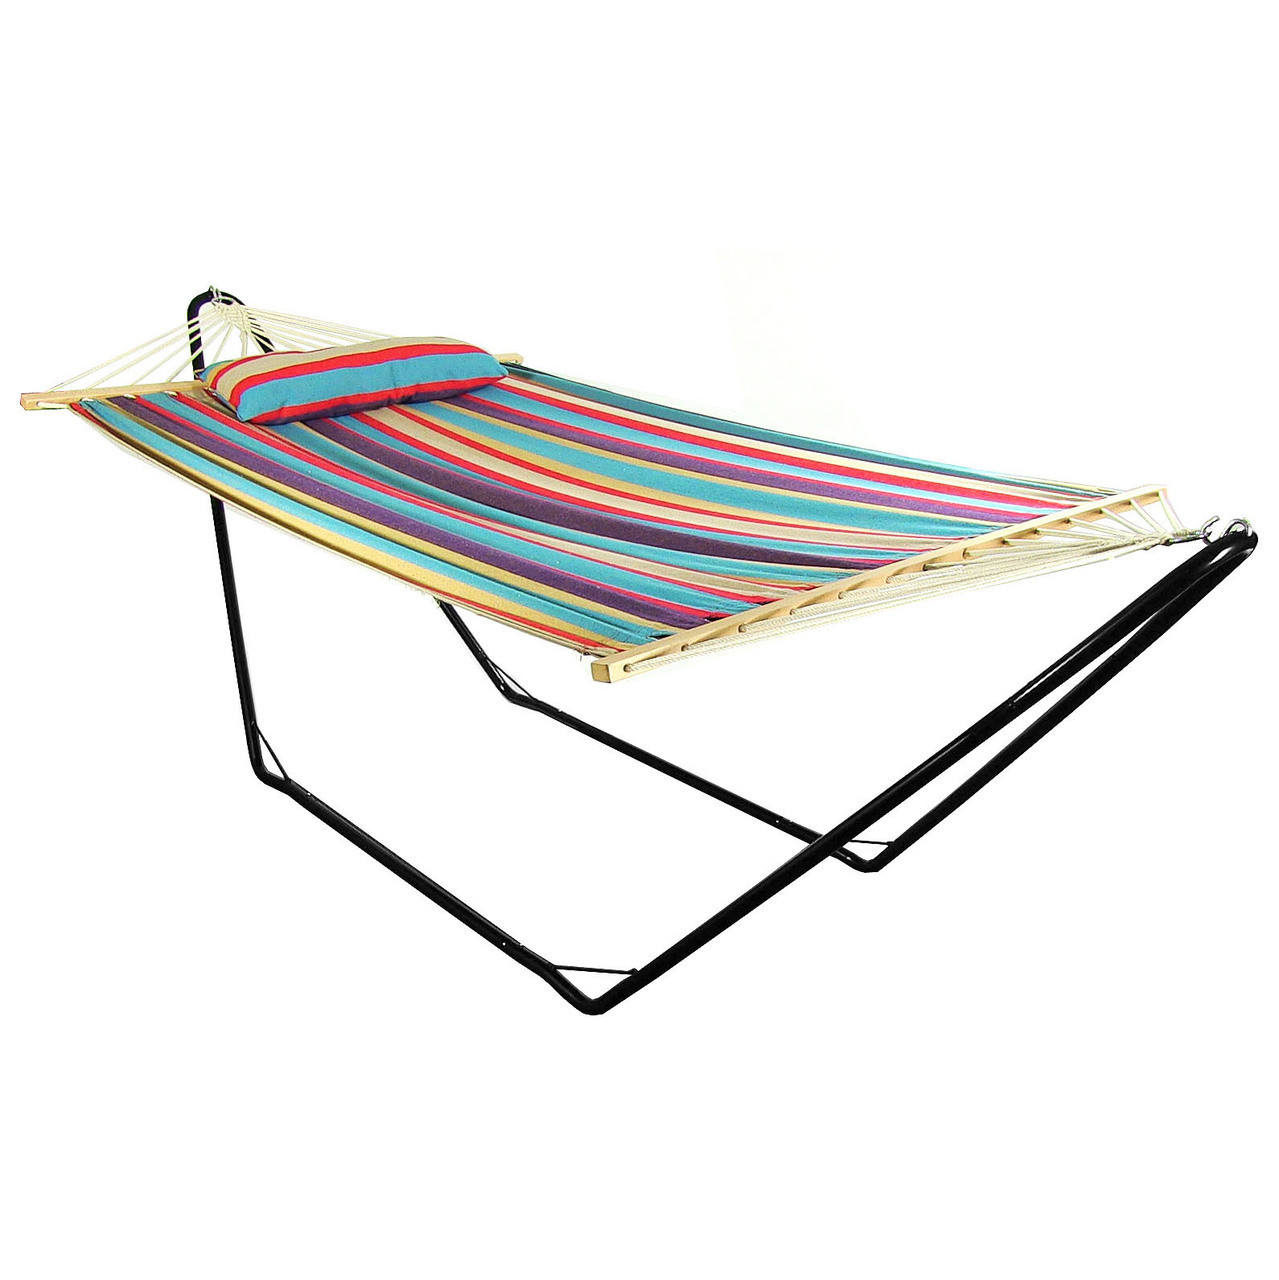 Sunnydaze Wildberry Cotton Fabric Hammock Spreader Bars Pillow Stand Com Picture 538